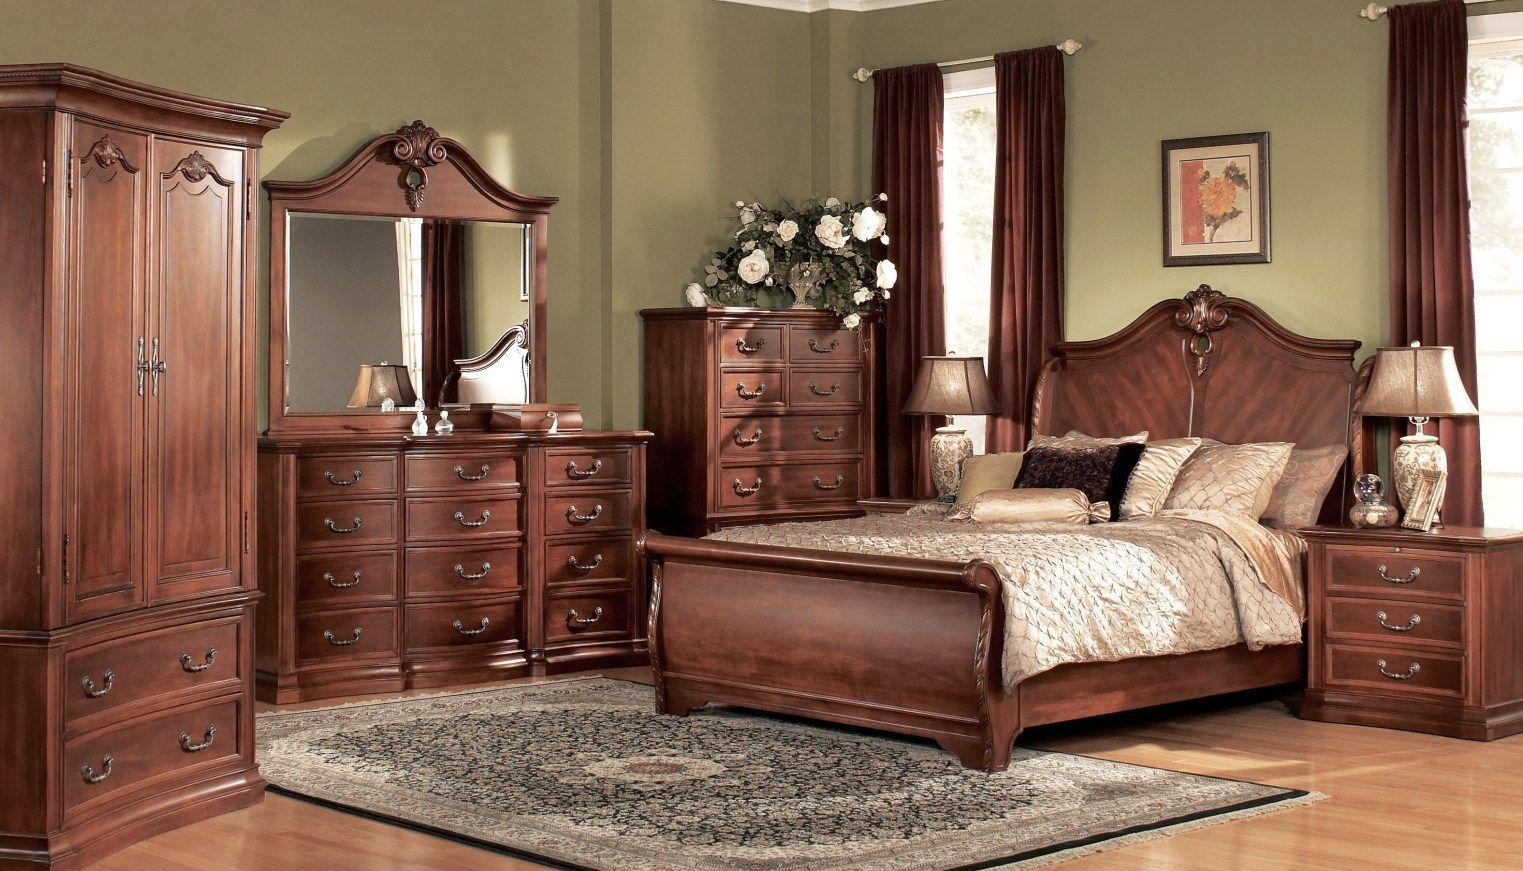 Best Wood Furniture Brands Bedroom Furniture Brands Master Bedroom Furniture Bedroom Sets